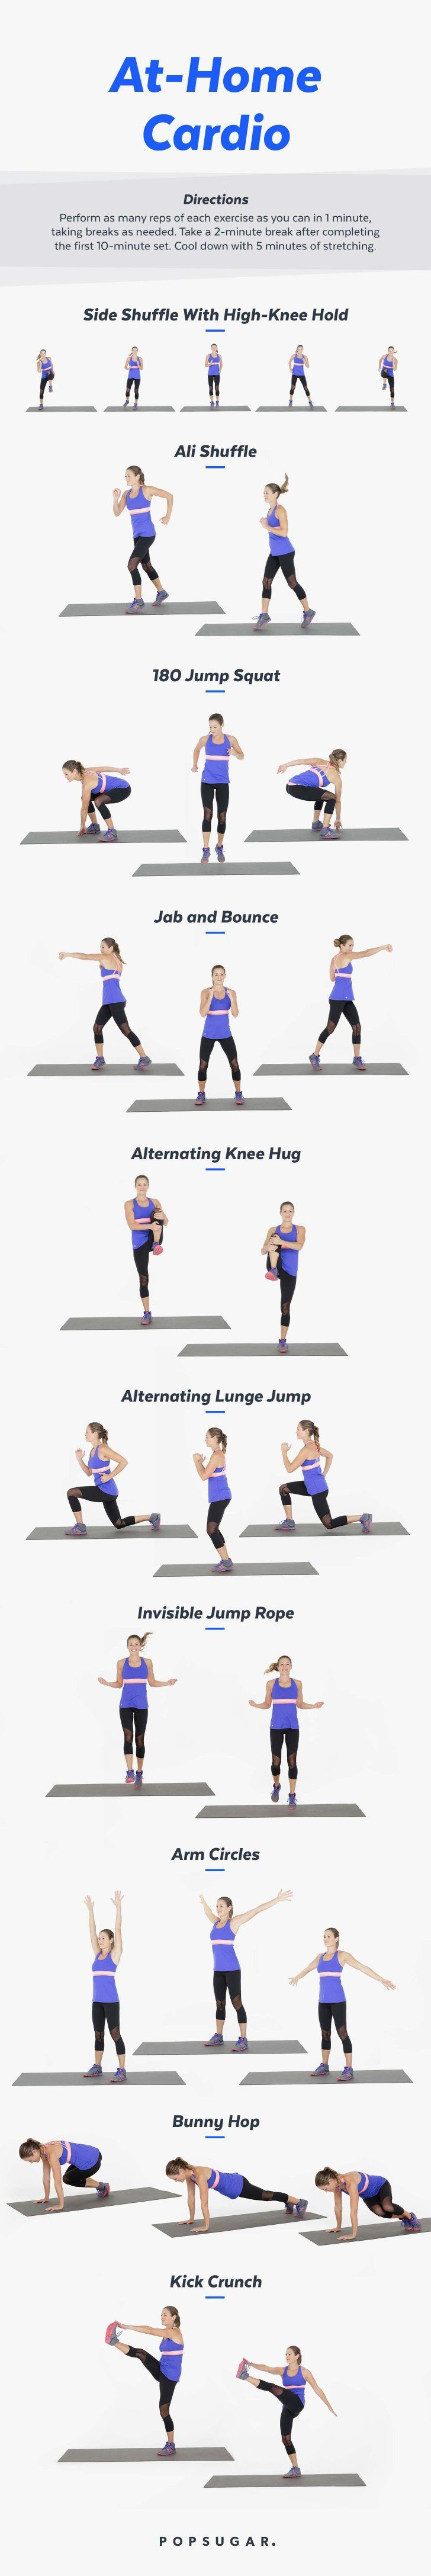 Printable At-Home Cardio Workout | Cardio workouts, Cardio and Workout